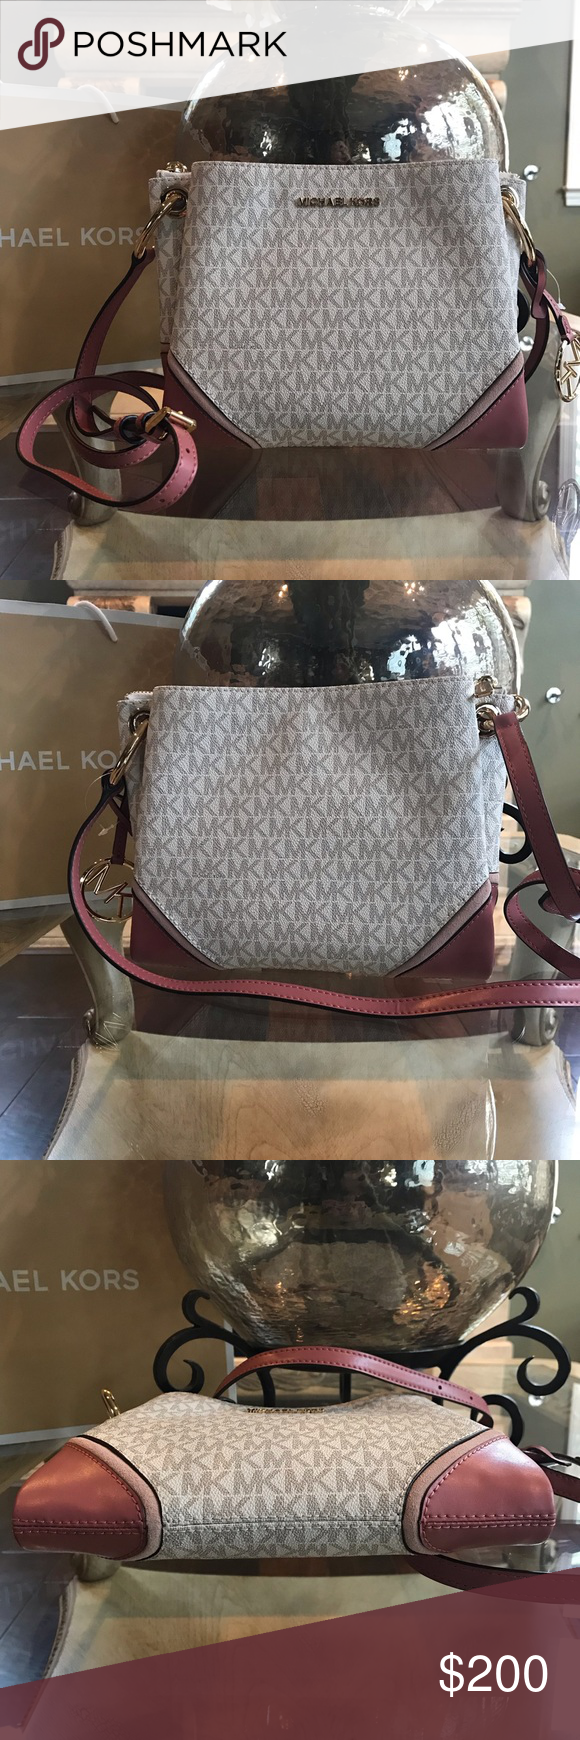 8d364f5045a6 Michael Kors Nicole Triple Compartment Crossbody So in Love with this  crossbody bag! Beautiful MK